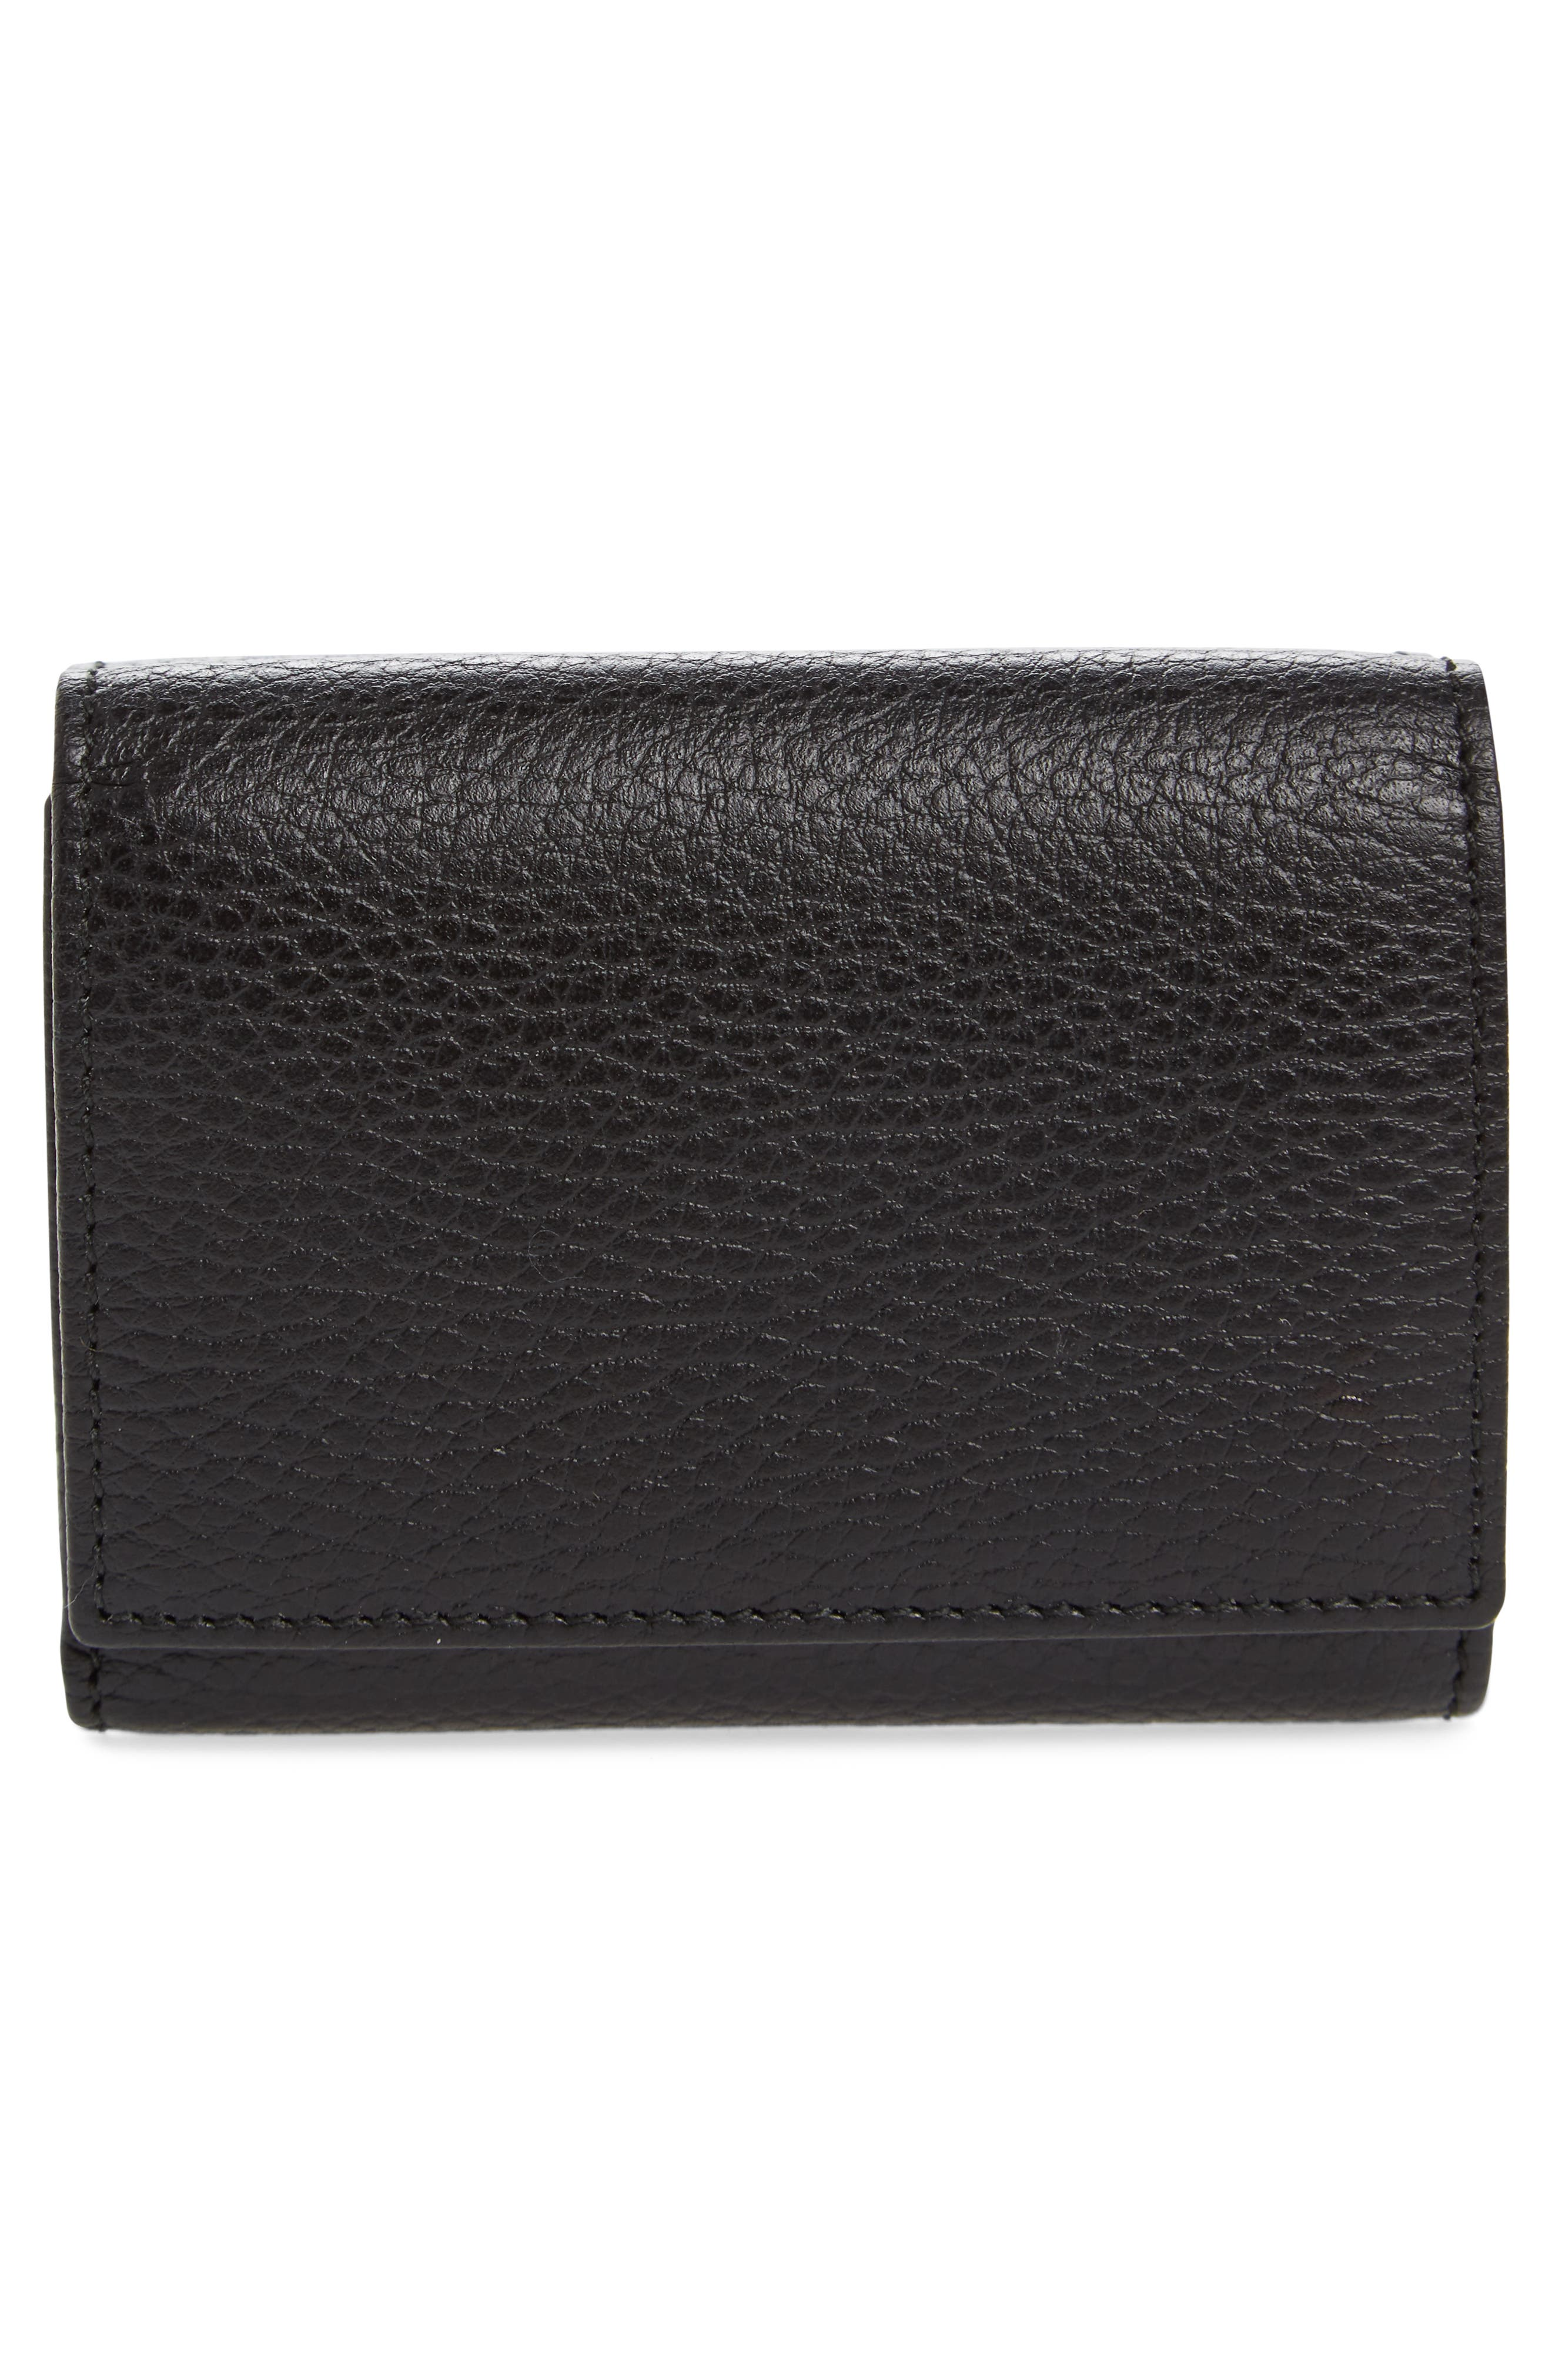 Petite Marmont Leather French Wallet,                             Alternate thumbnail 3, color,